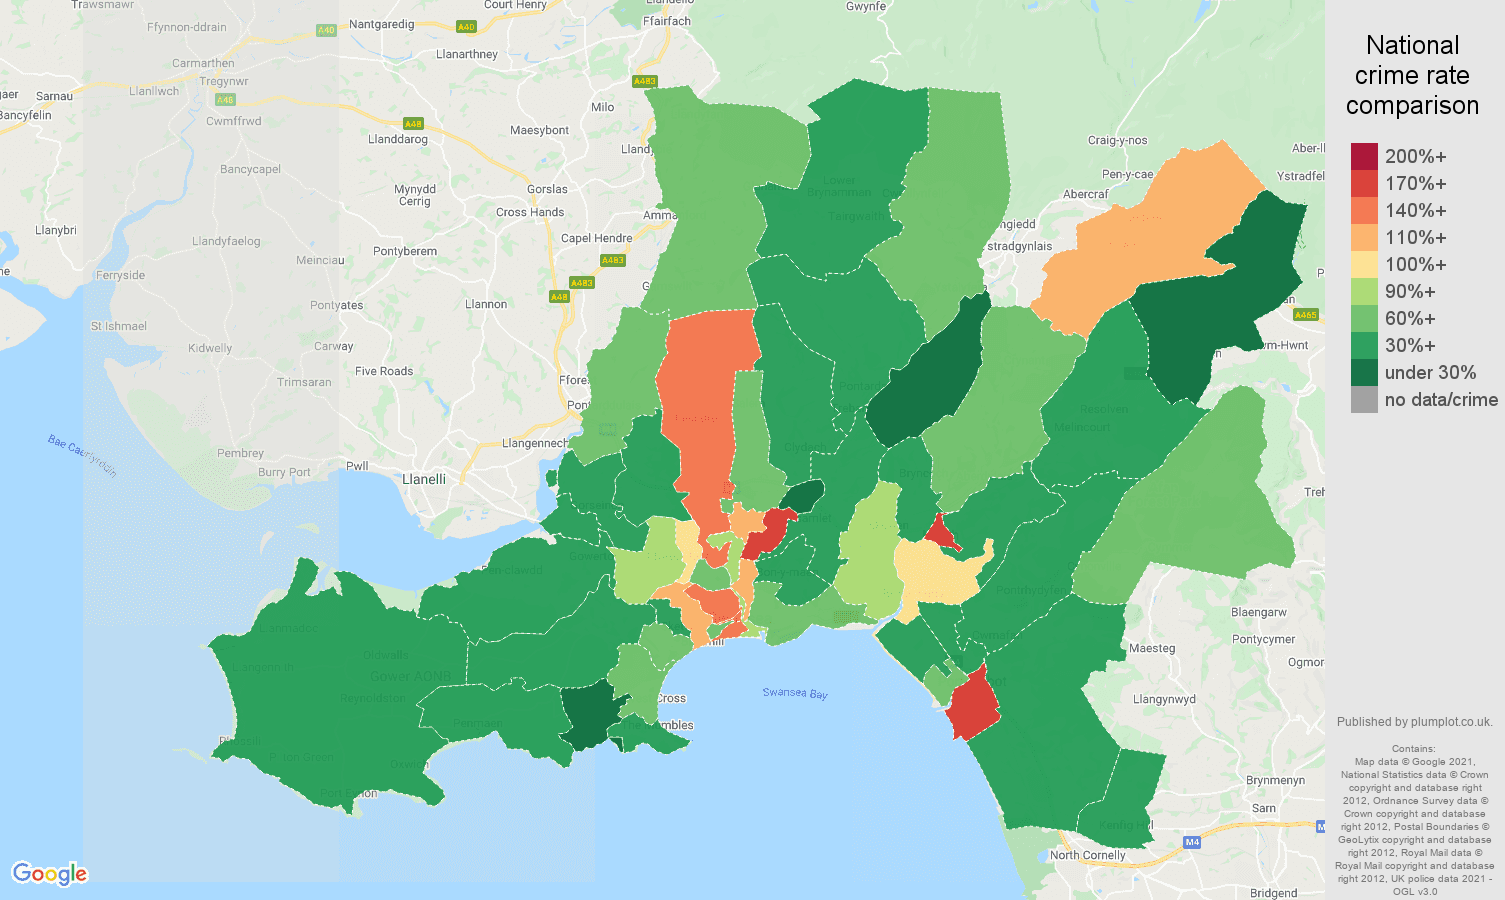 West Glamorgan burglary crime rate comparison map